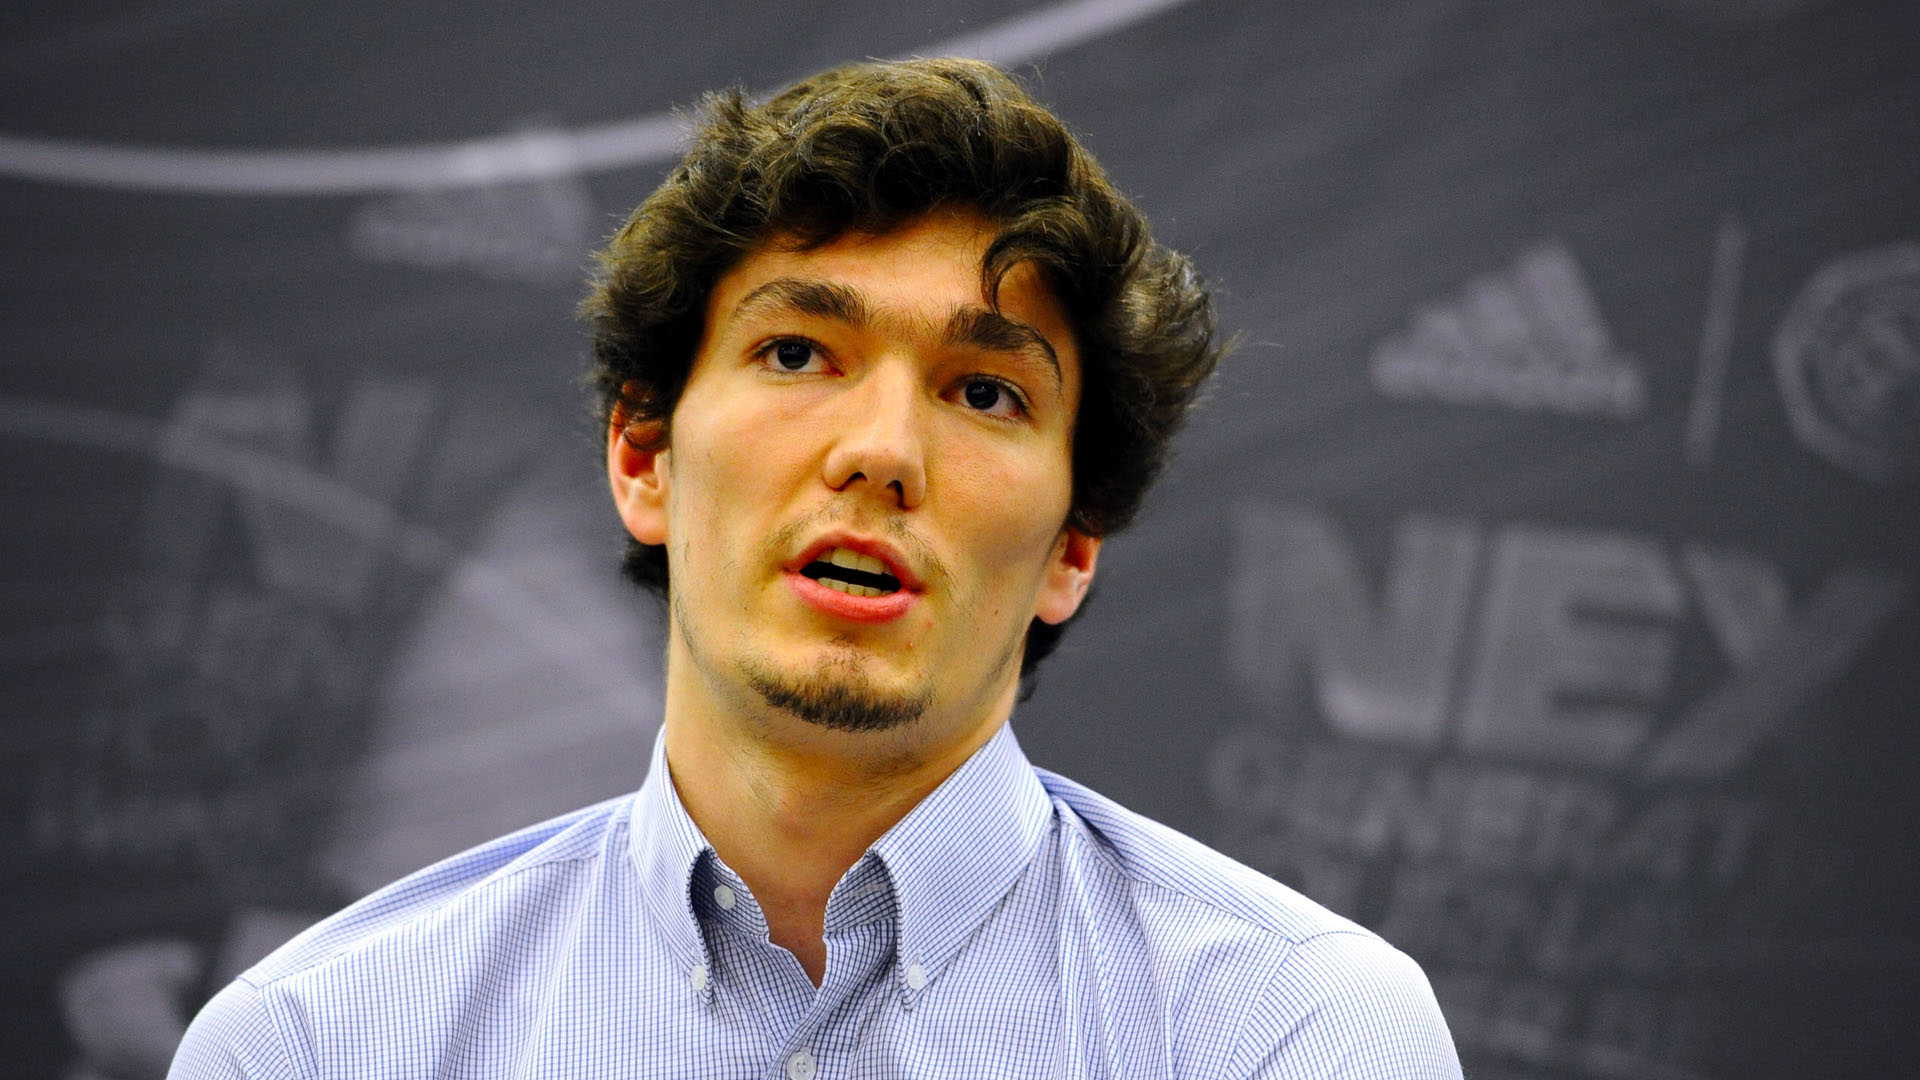 Cavaliers sign Turkish forward Cedi Osman to three-year deal